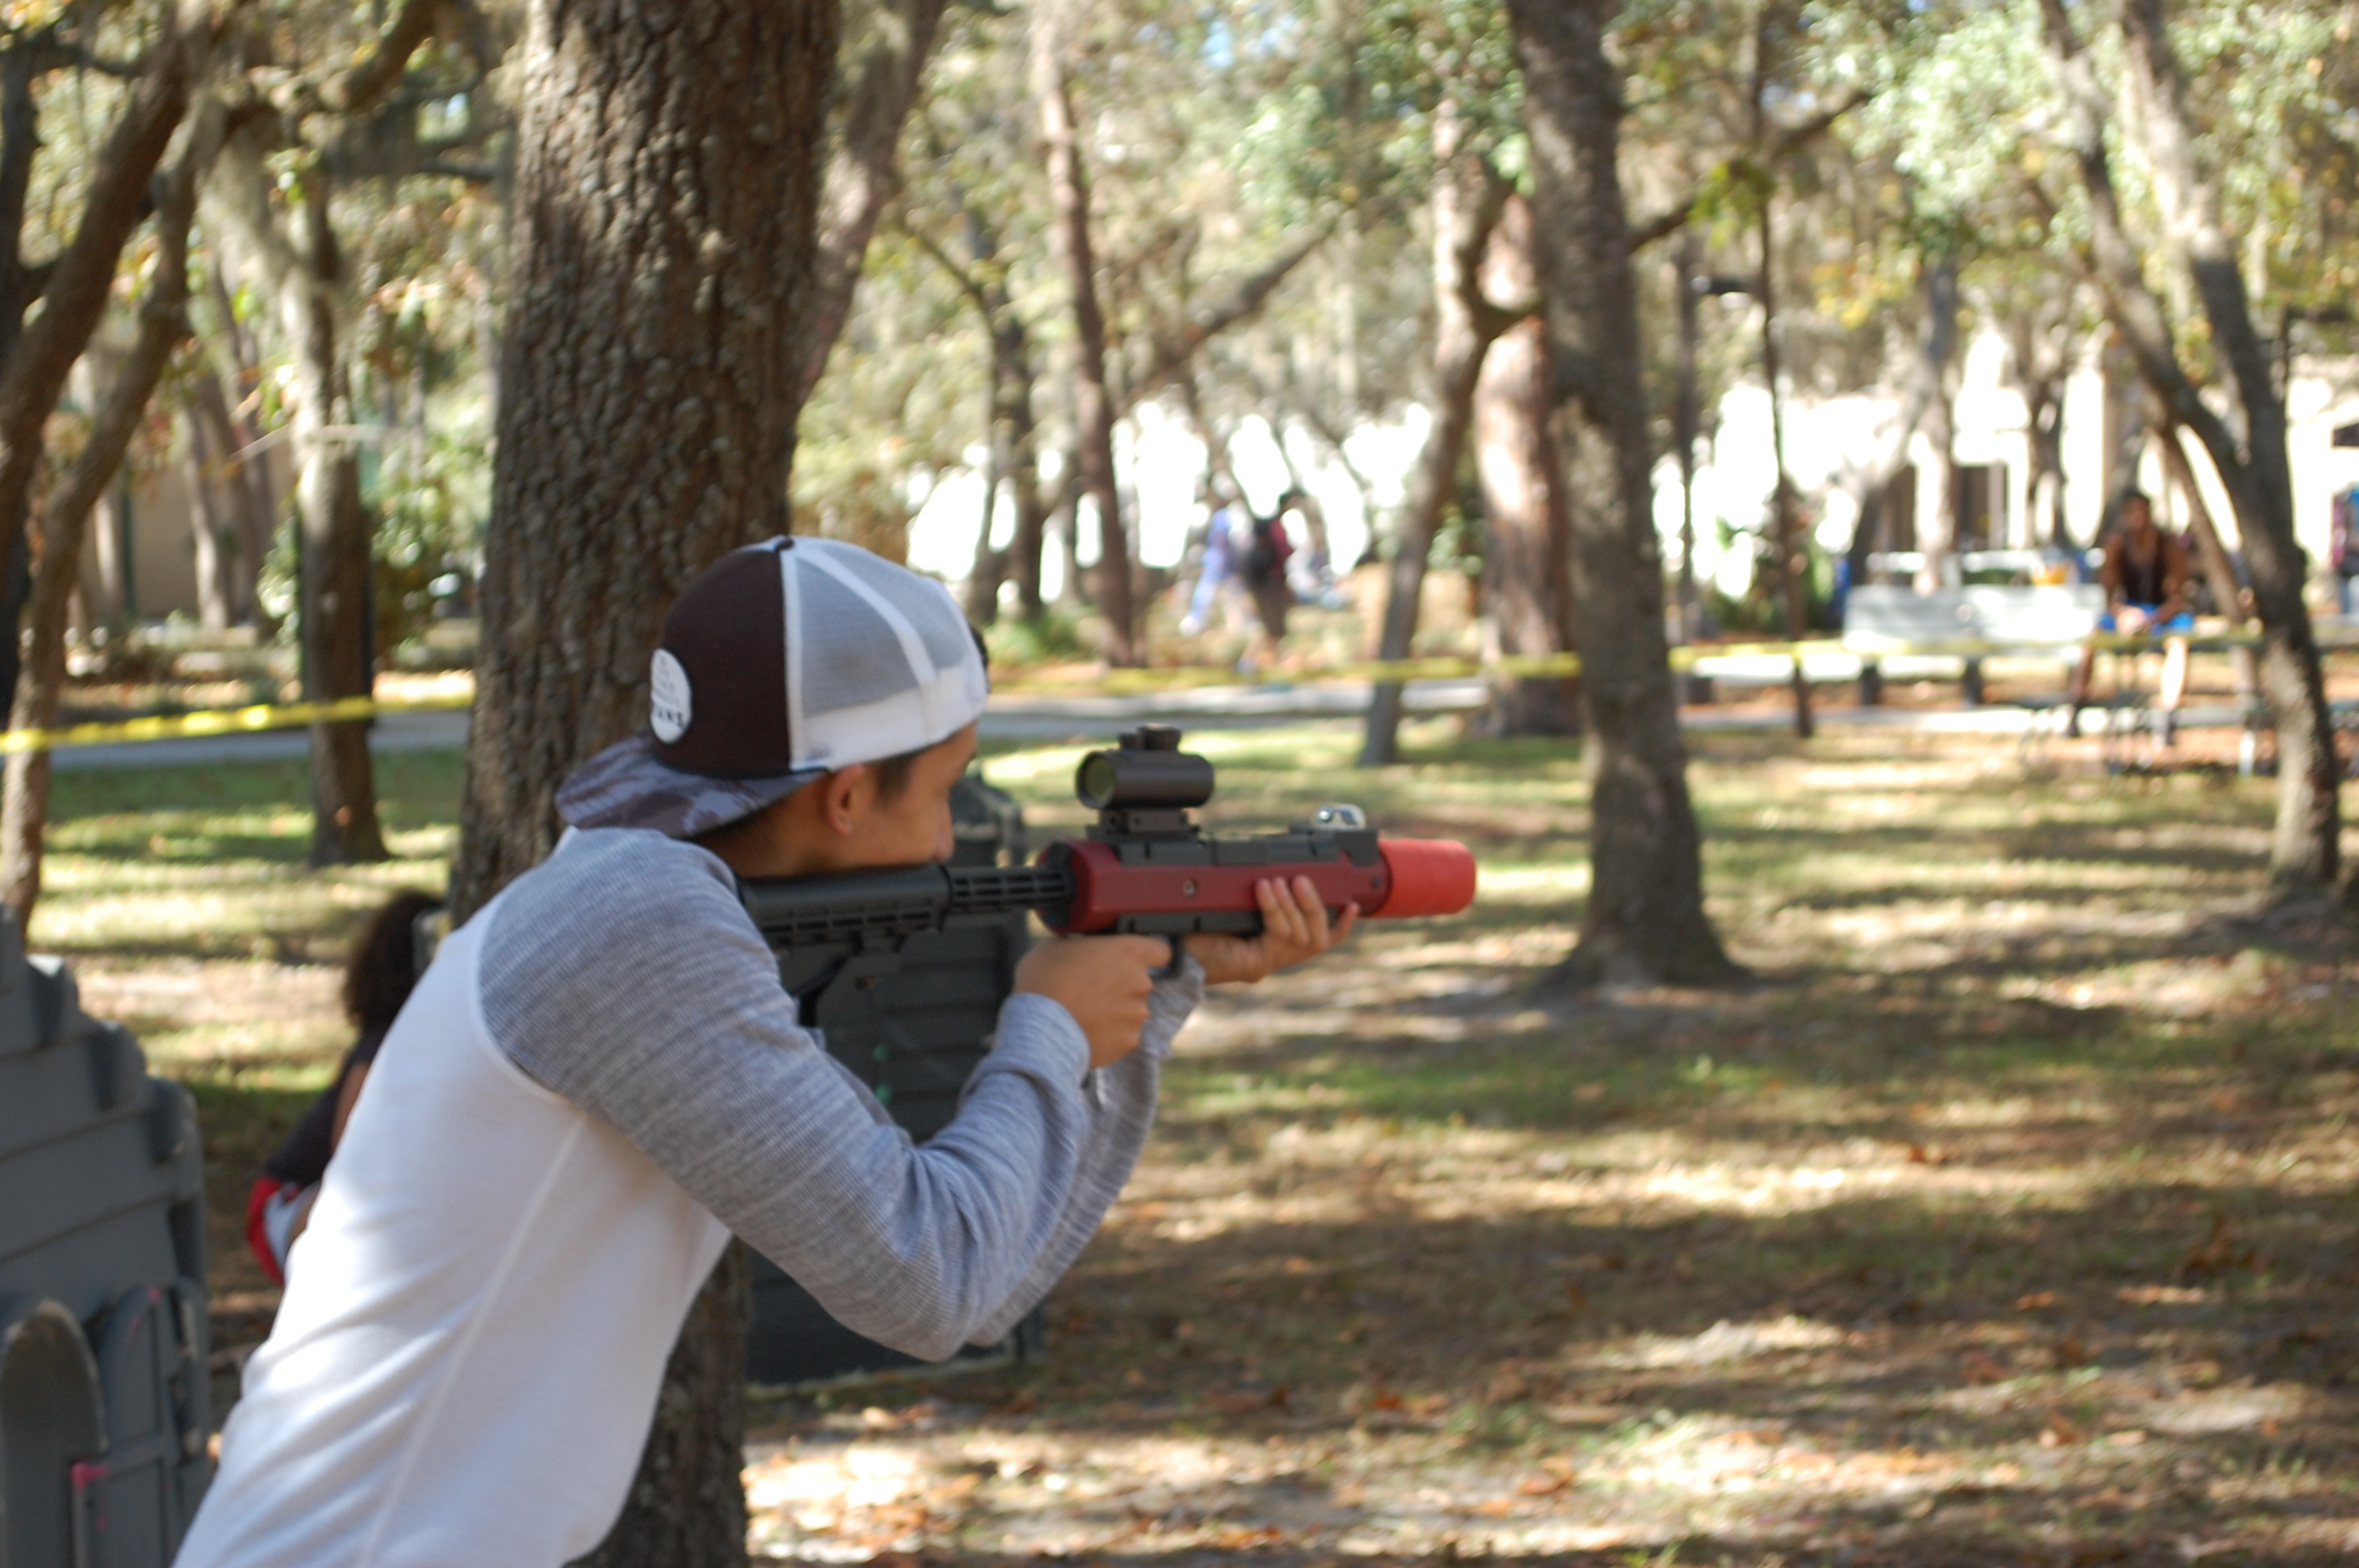 College Events in Florida - Stealth Mobile Laser Tag (53)